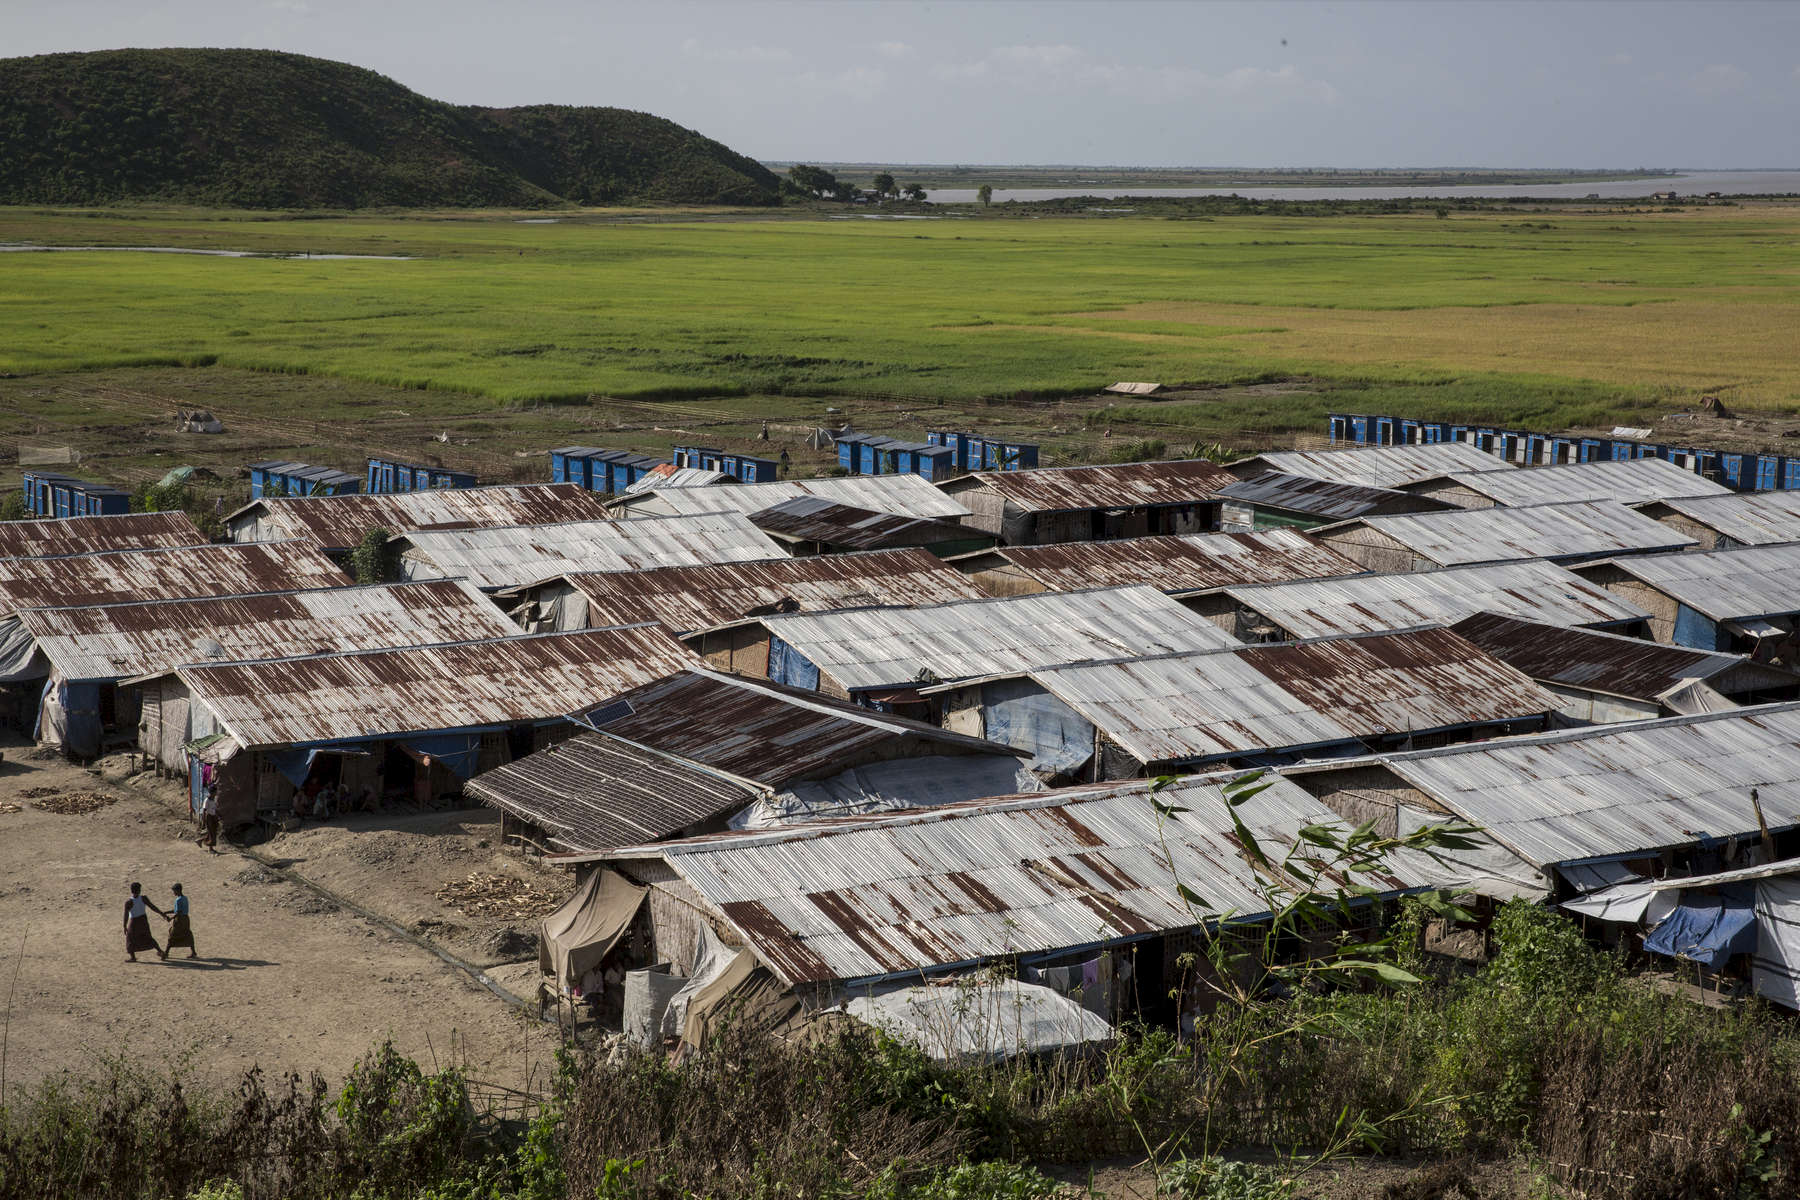 MAYEBON - NOV 8: Overall of the Mayebon IDP camp where registration has taken place forcing the residents of the camp to list themselves as Bengali not Rohingya. The new policy is called the Rakhine Action Plan. Paula Bronstein for The Washington Post